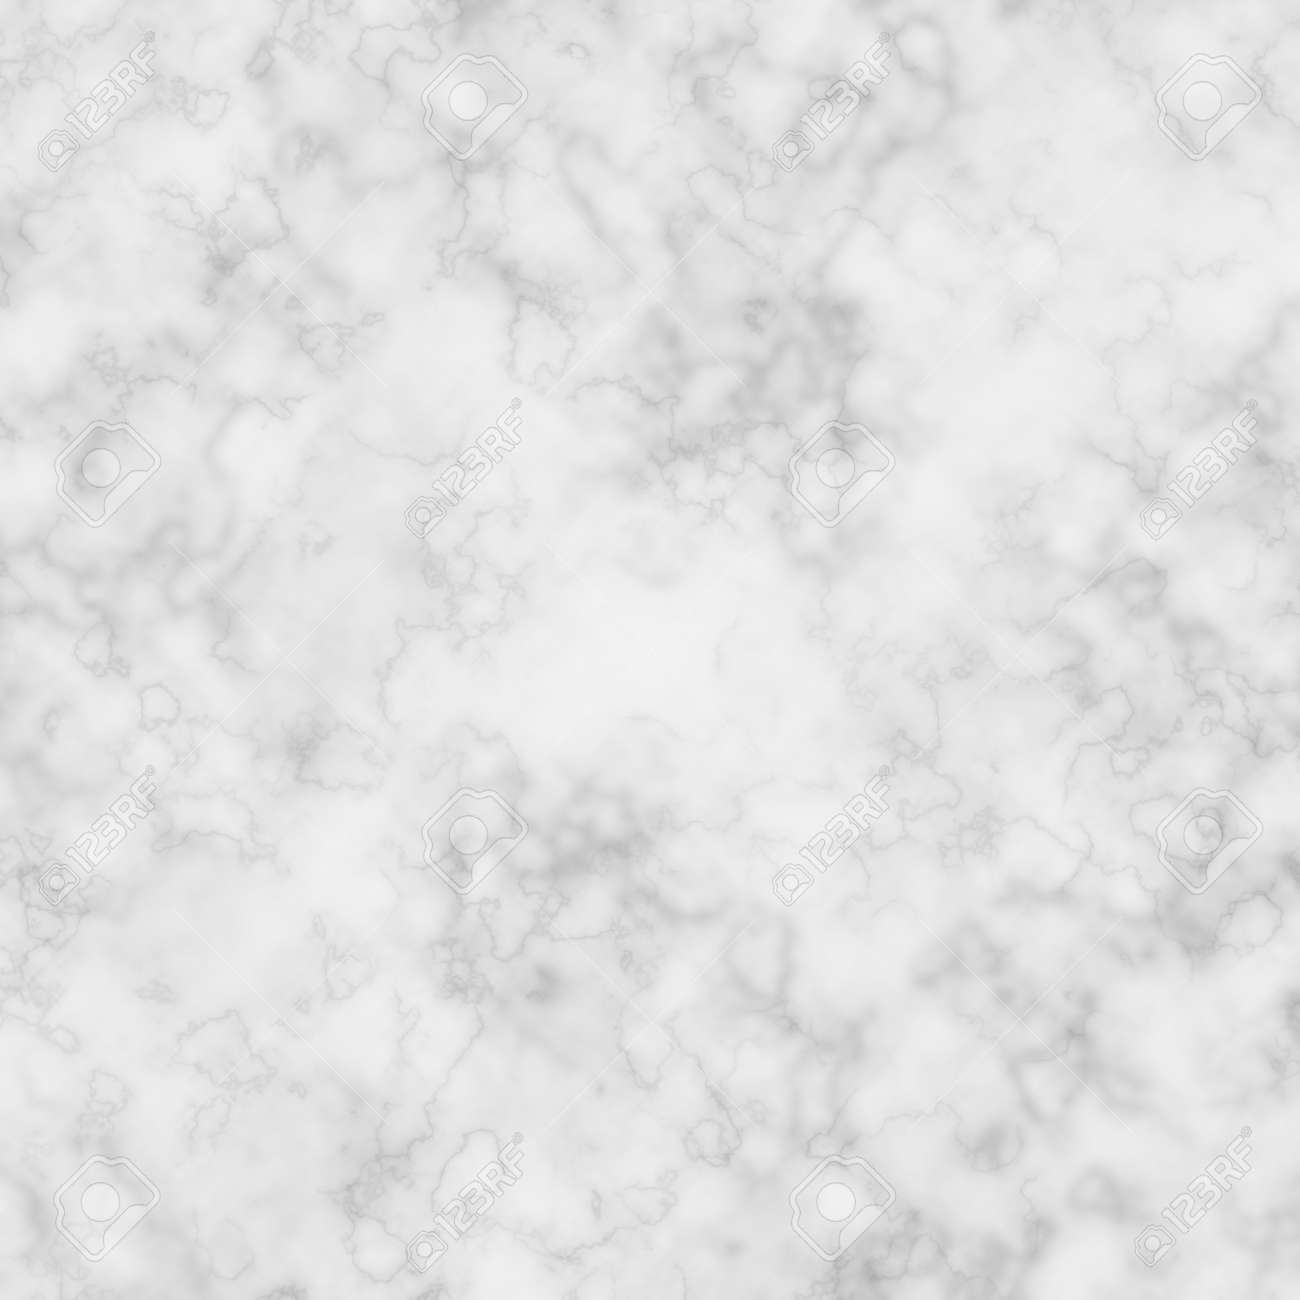 Smooth White Wall Texture Marble White Wall Texture or